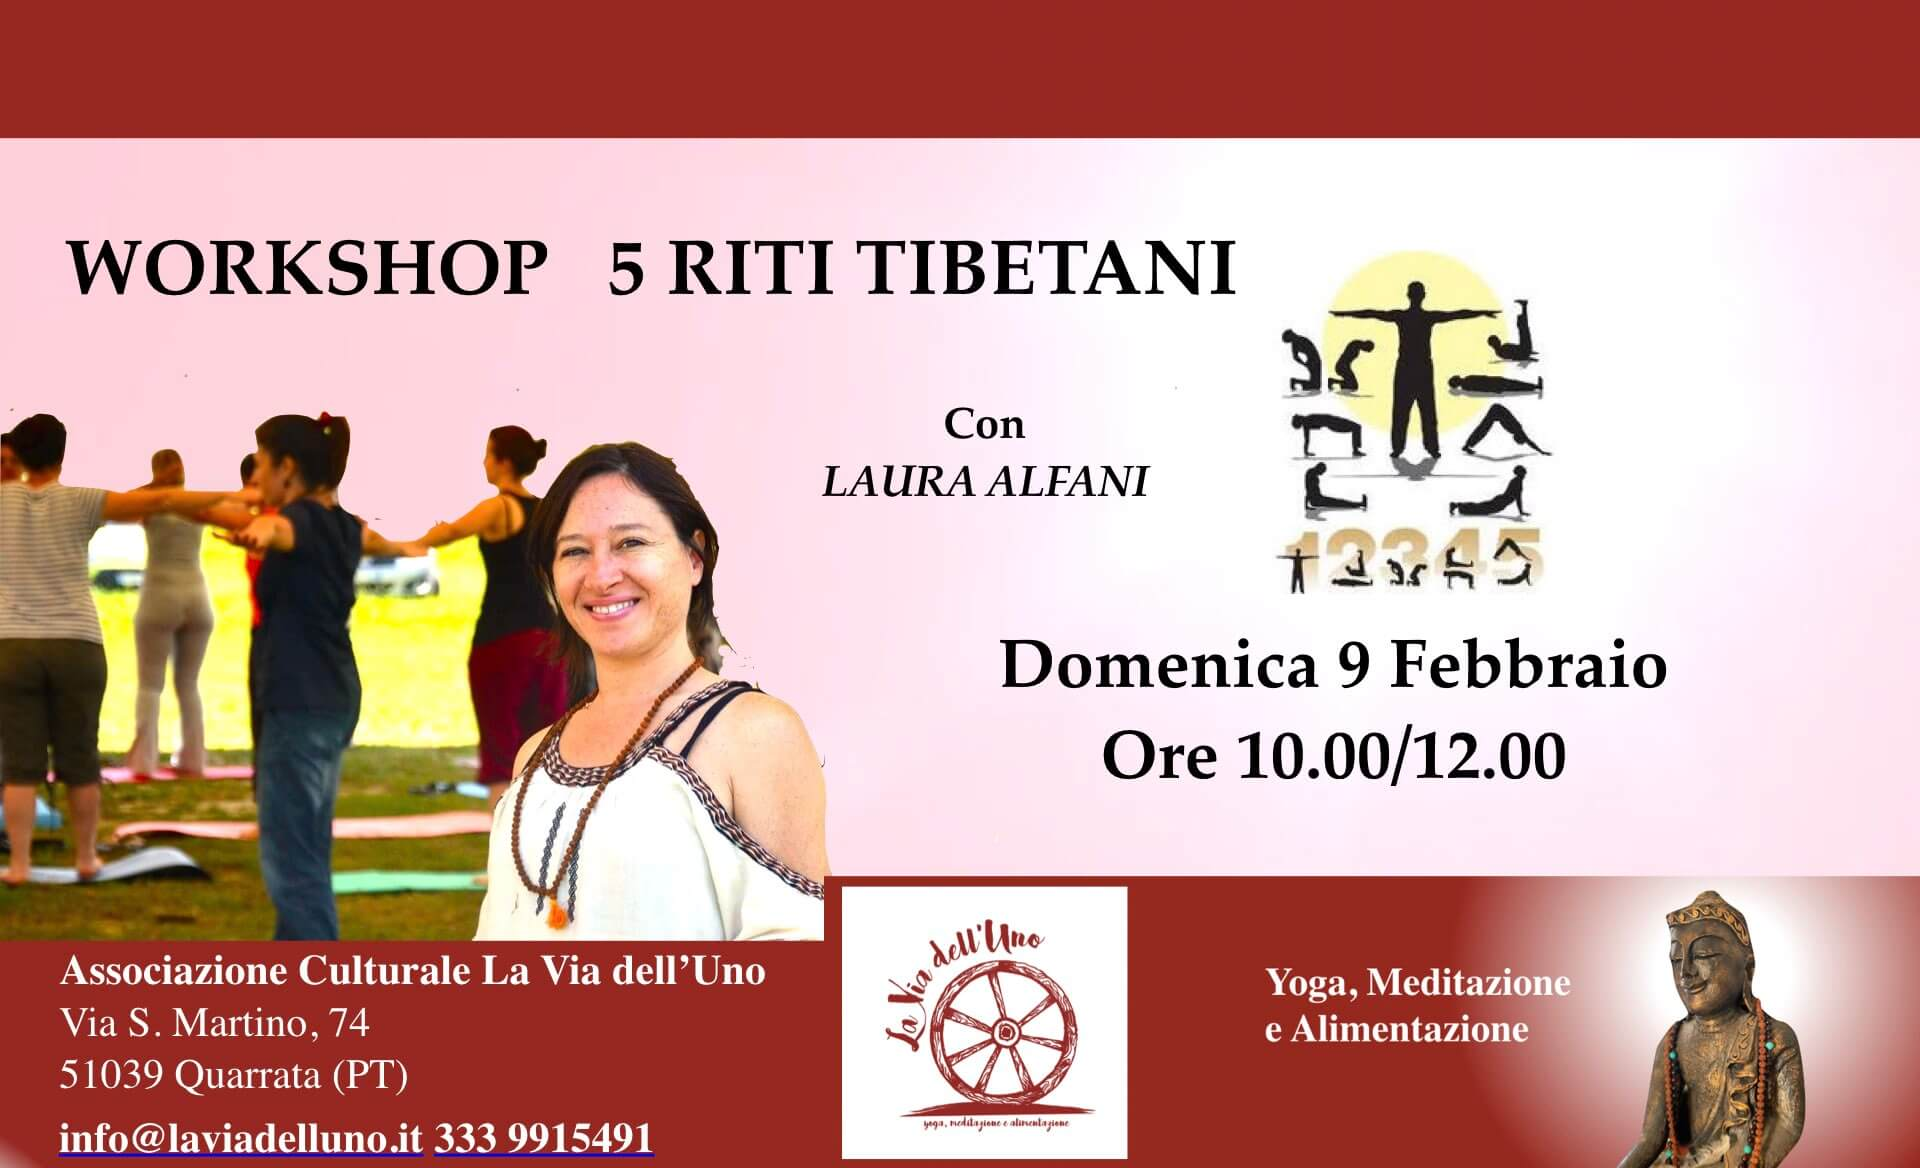 5 Riti Tibetani Workshop